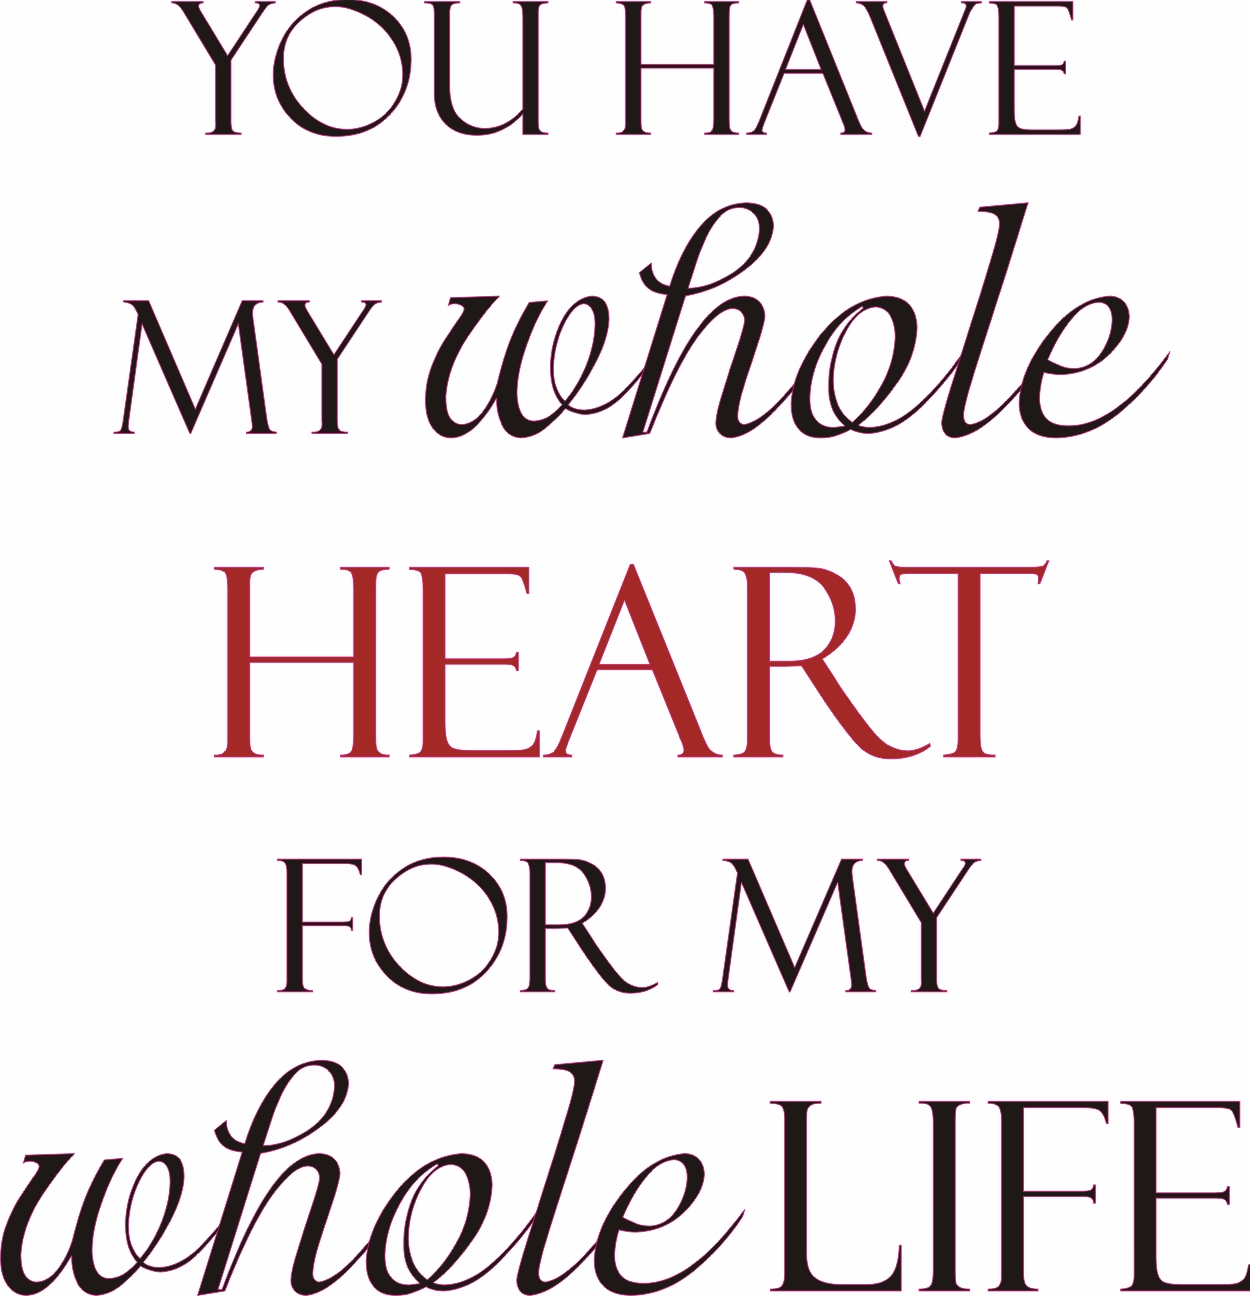 Whole Life Quote Classy You Have My Whole Heart For My Whole Life  Quote The Walls